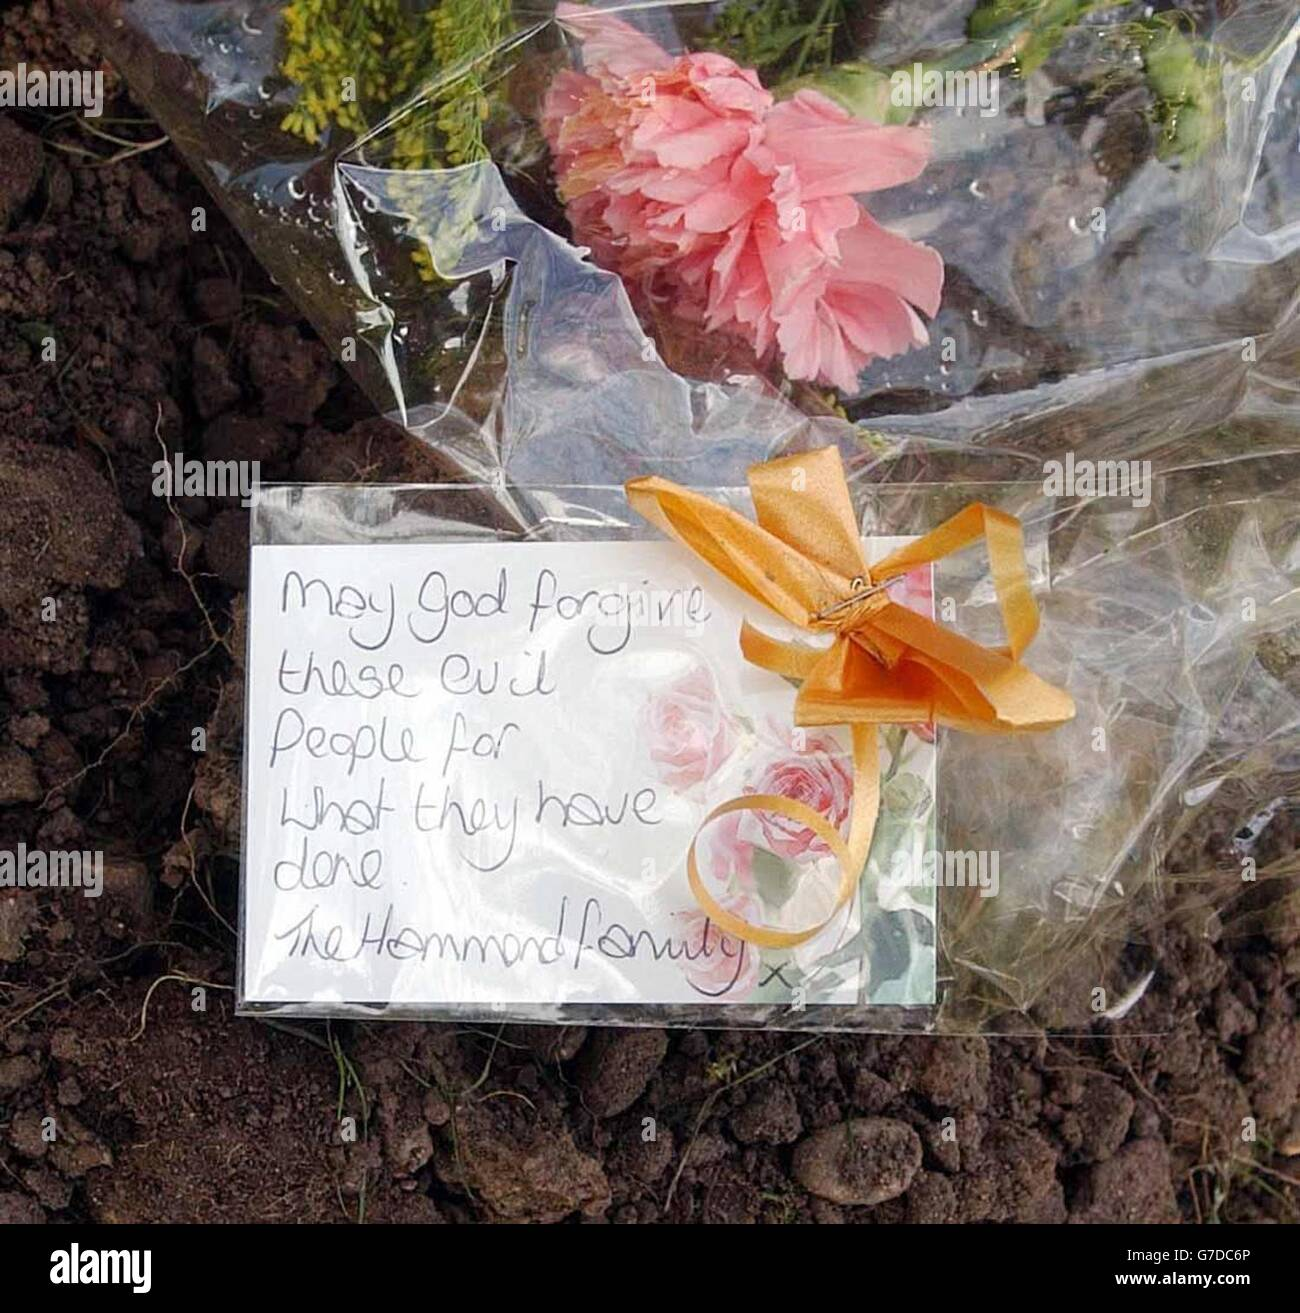 Mary POCKNELL: Frost, Gilchrist and Related Families